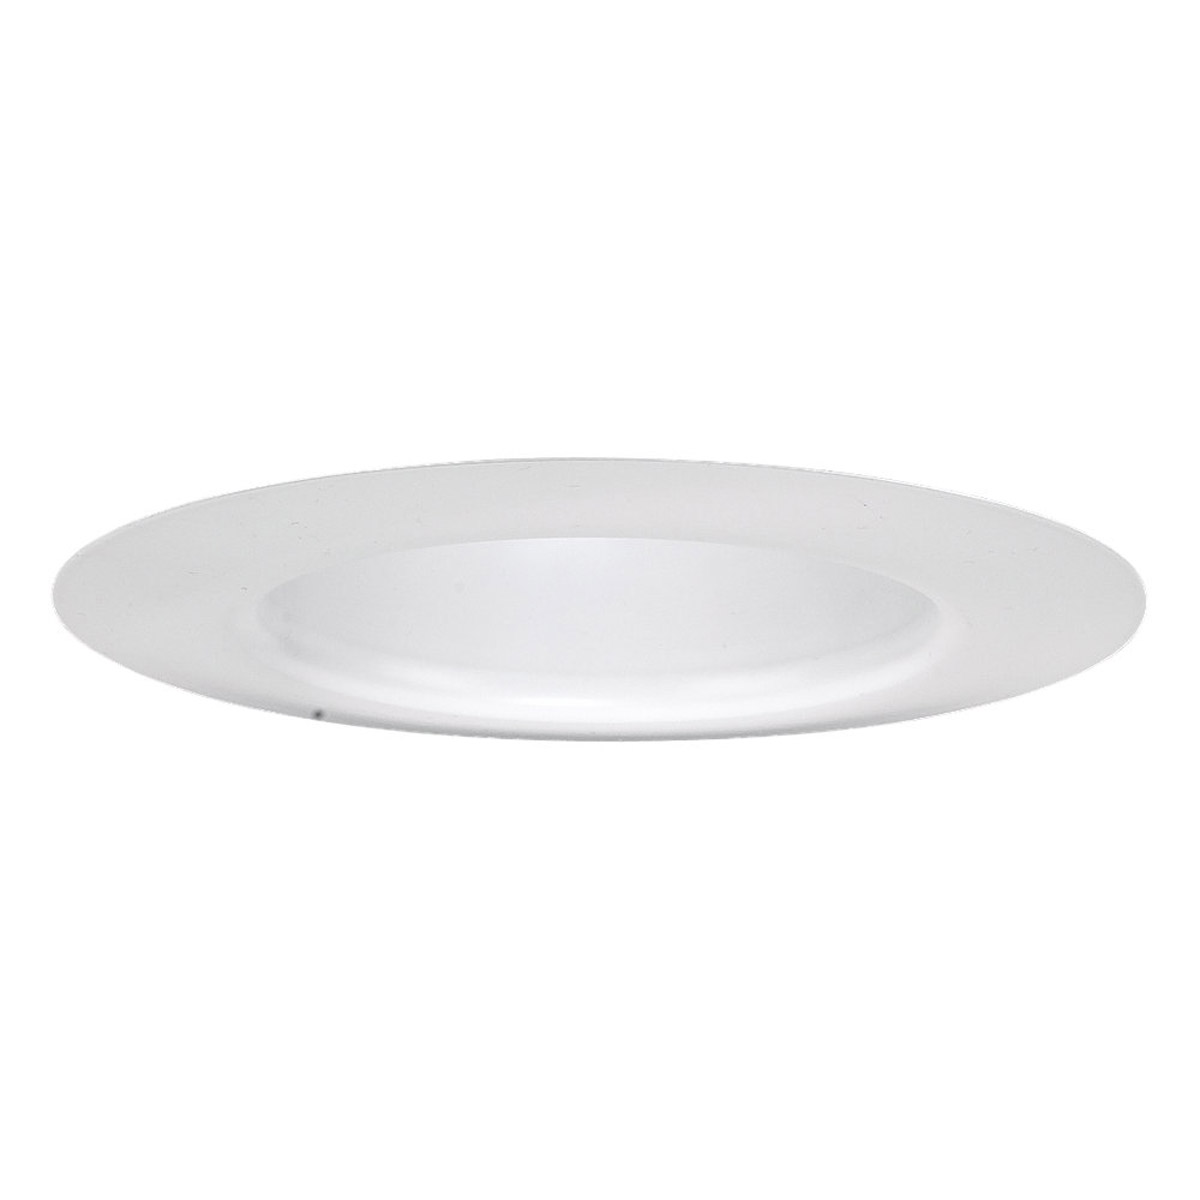 Sea Gull Lighting Signature Recessed Trim Only in White 11120AT-15